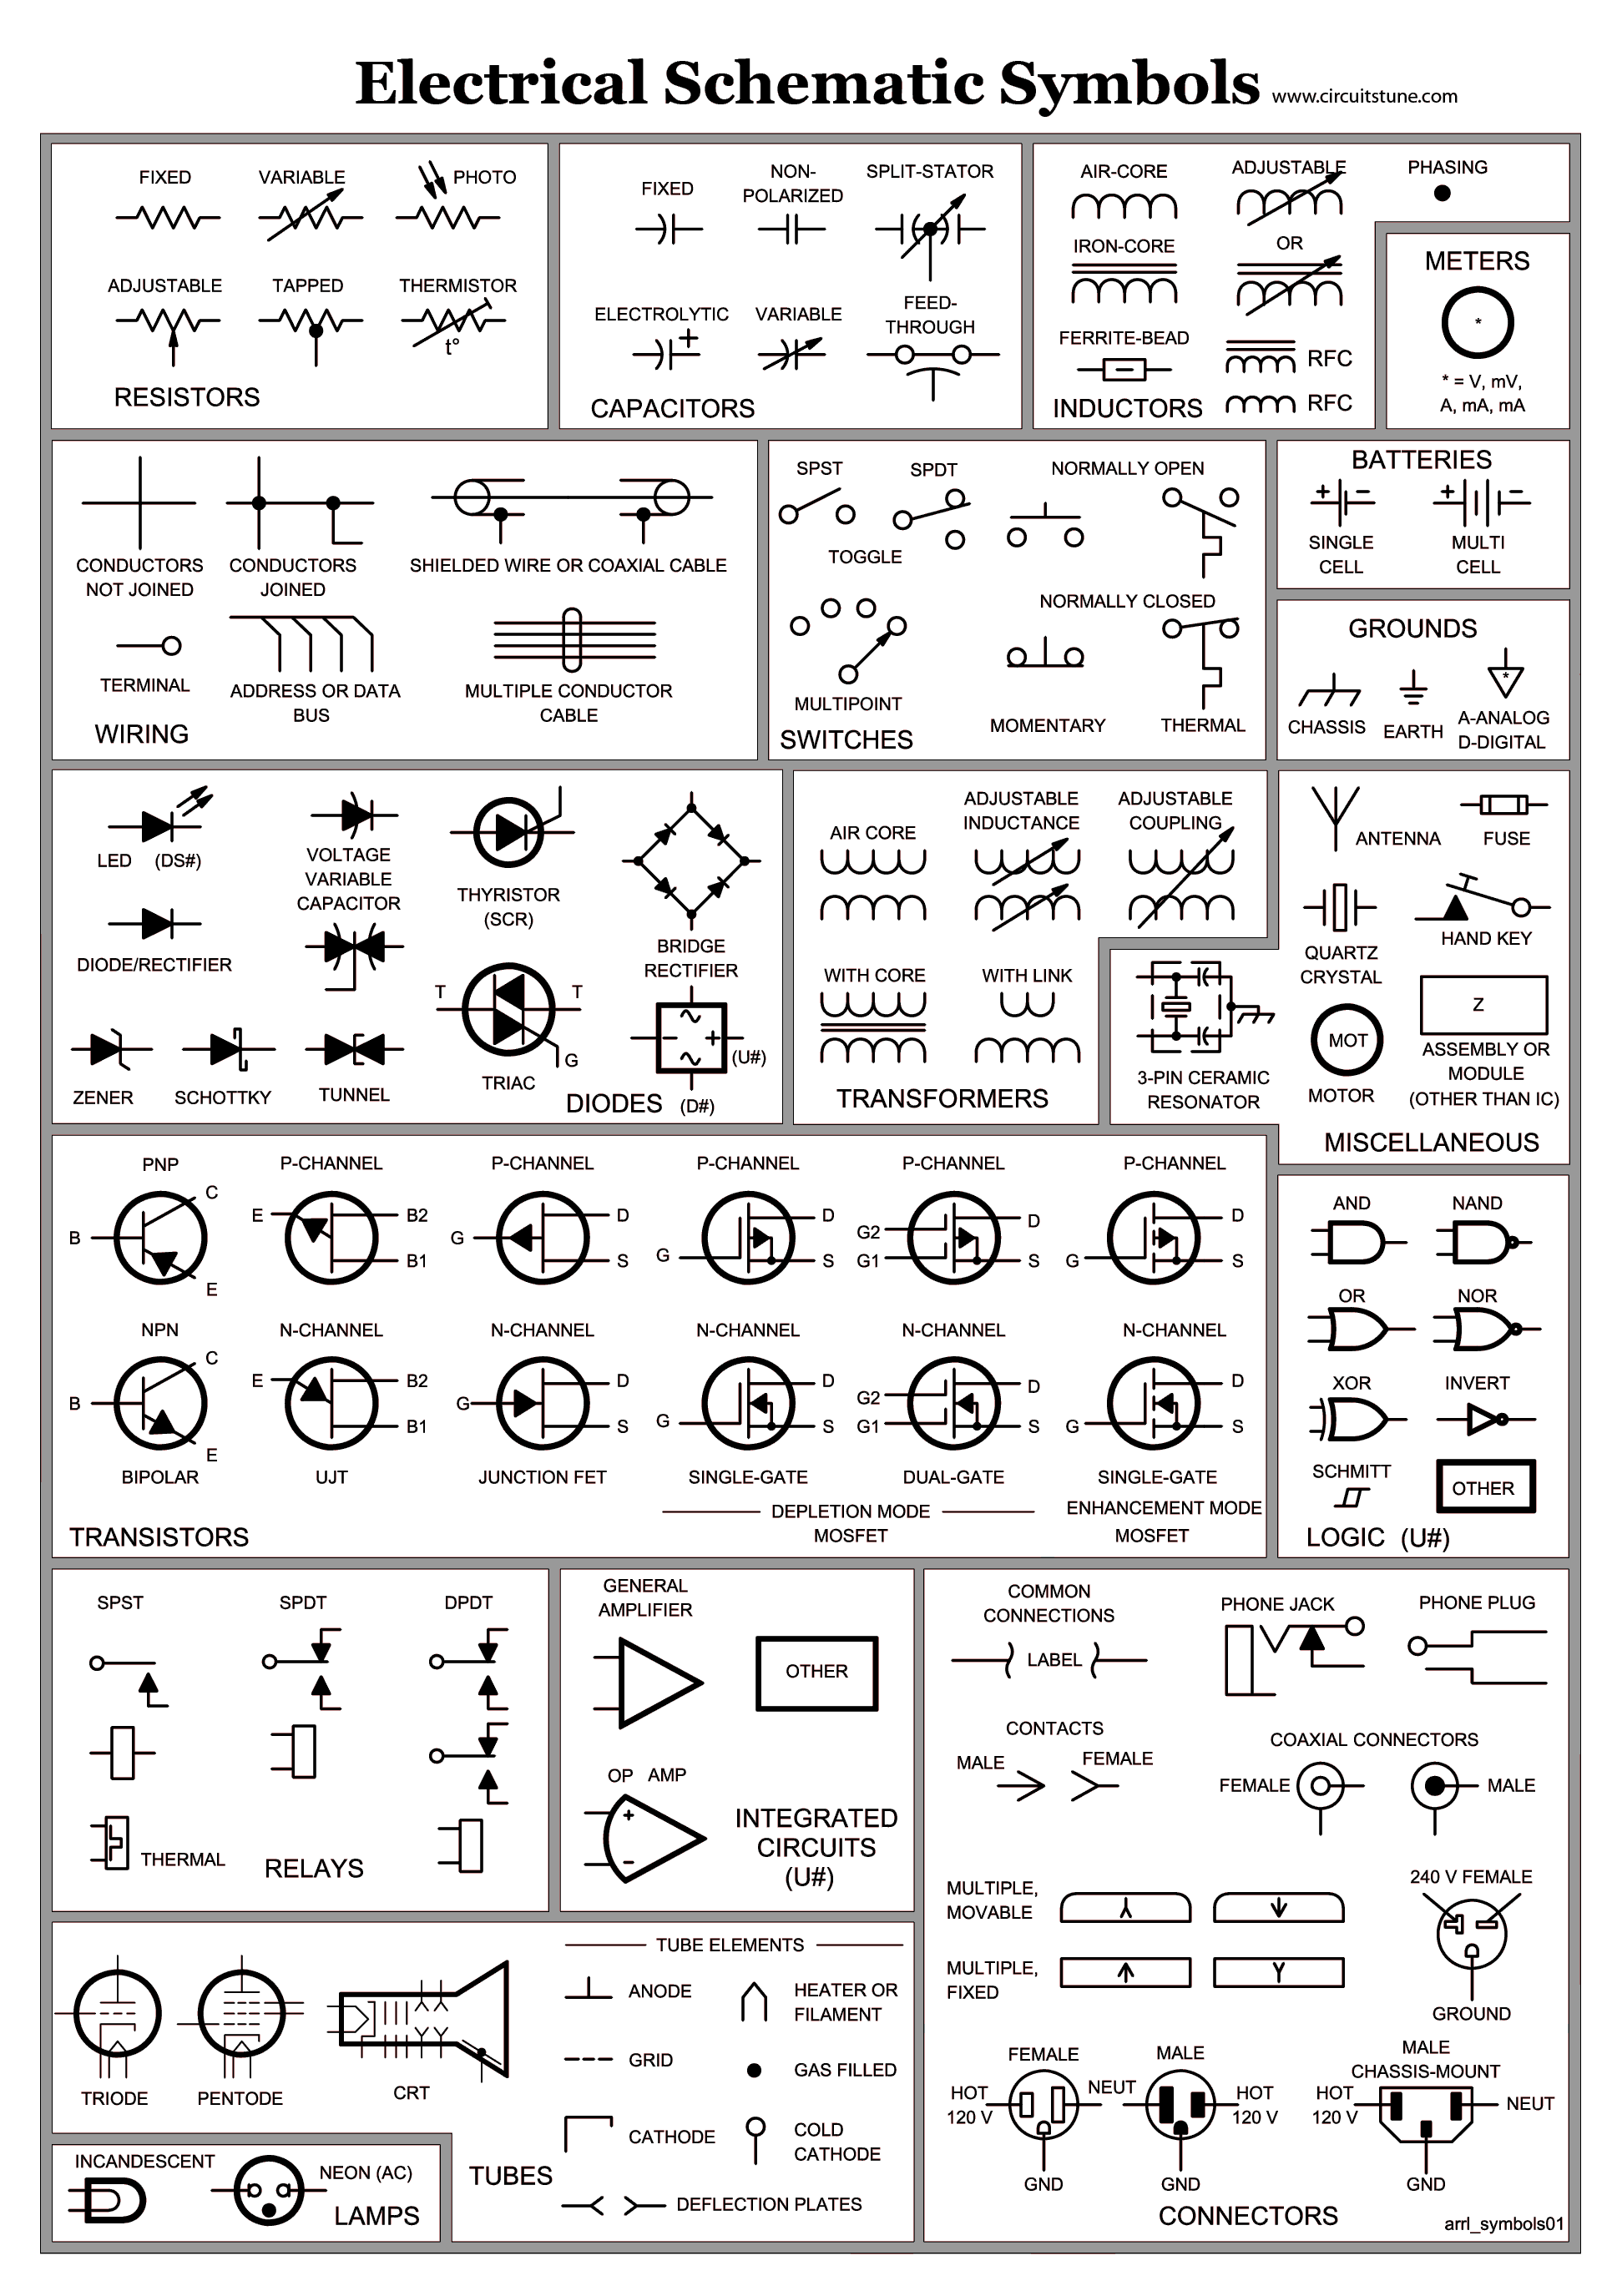 electrical schematic symbols skinsquiggles electrical wiringelectrical schematic symbols [ 1937 x 2751 Pixel ]